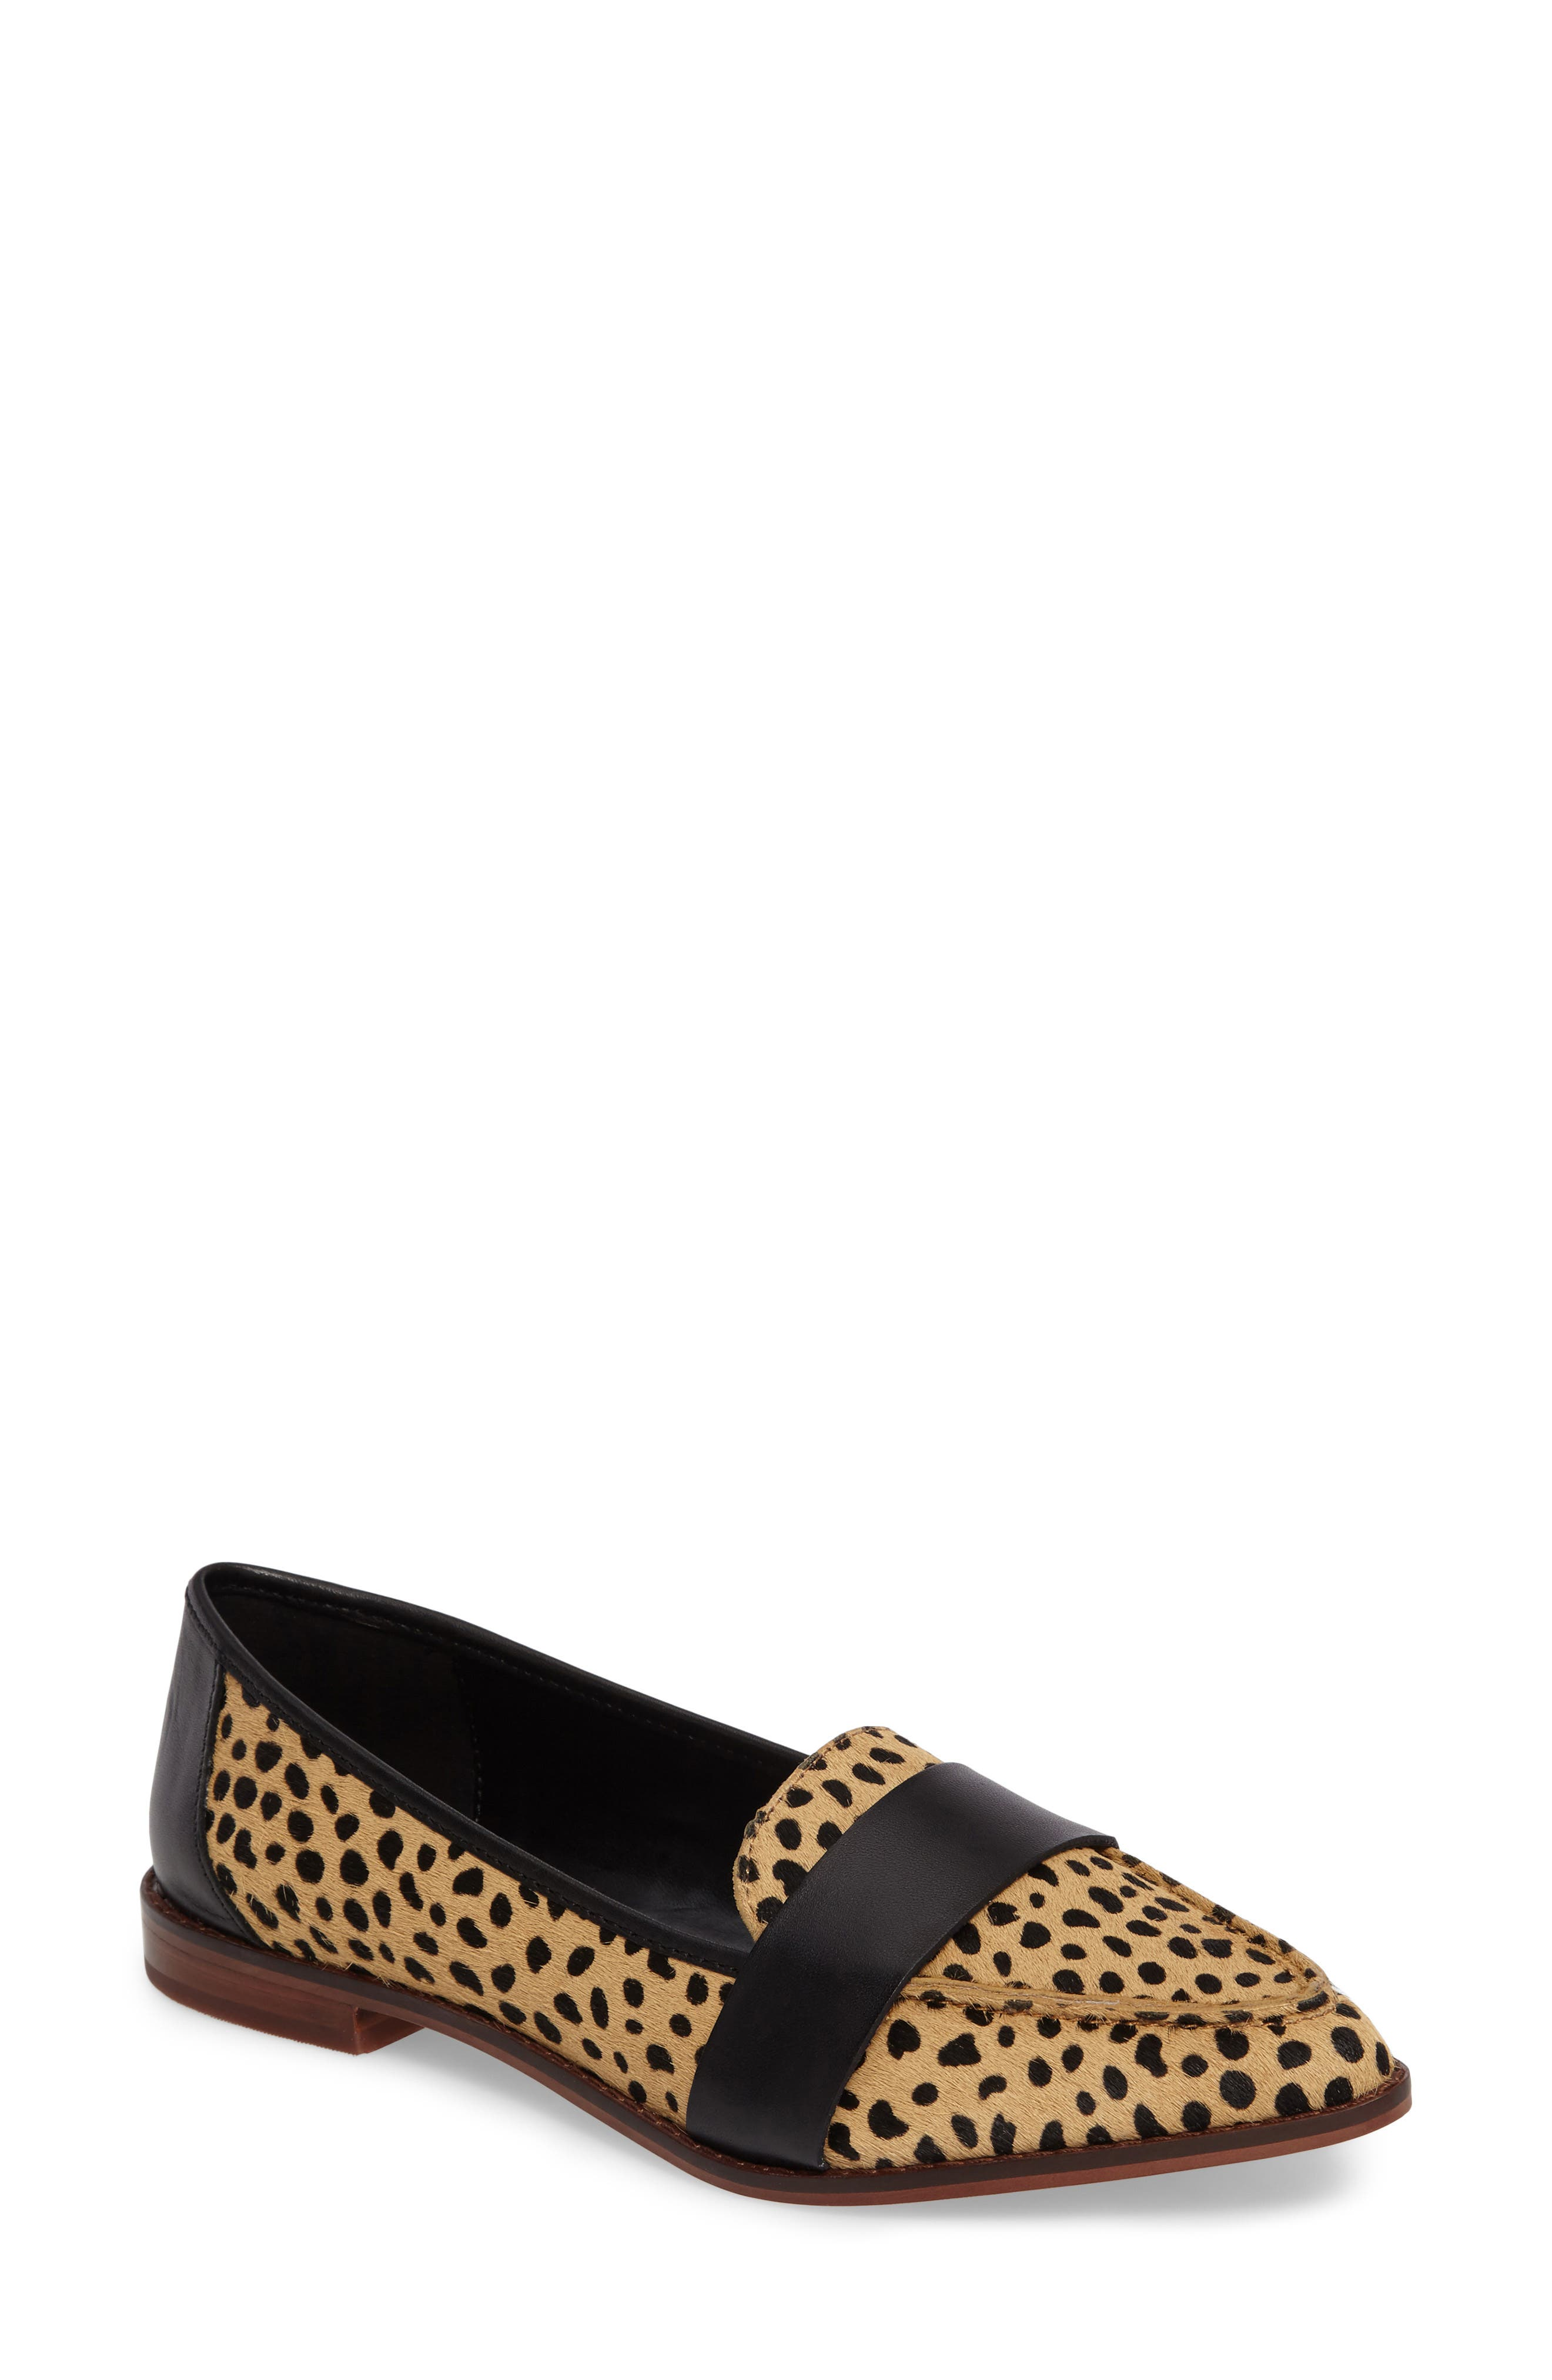 Main Image - Sole Society Edie Pointy Toe Loafer (Women)